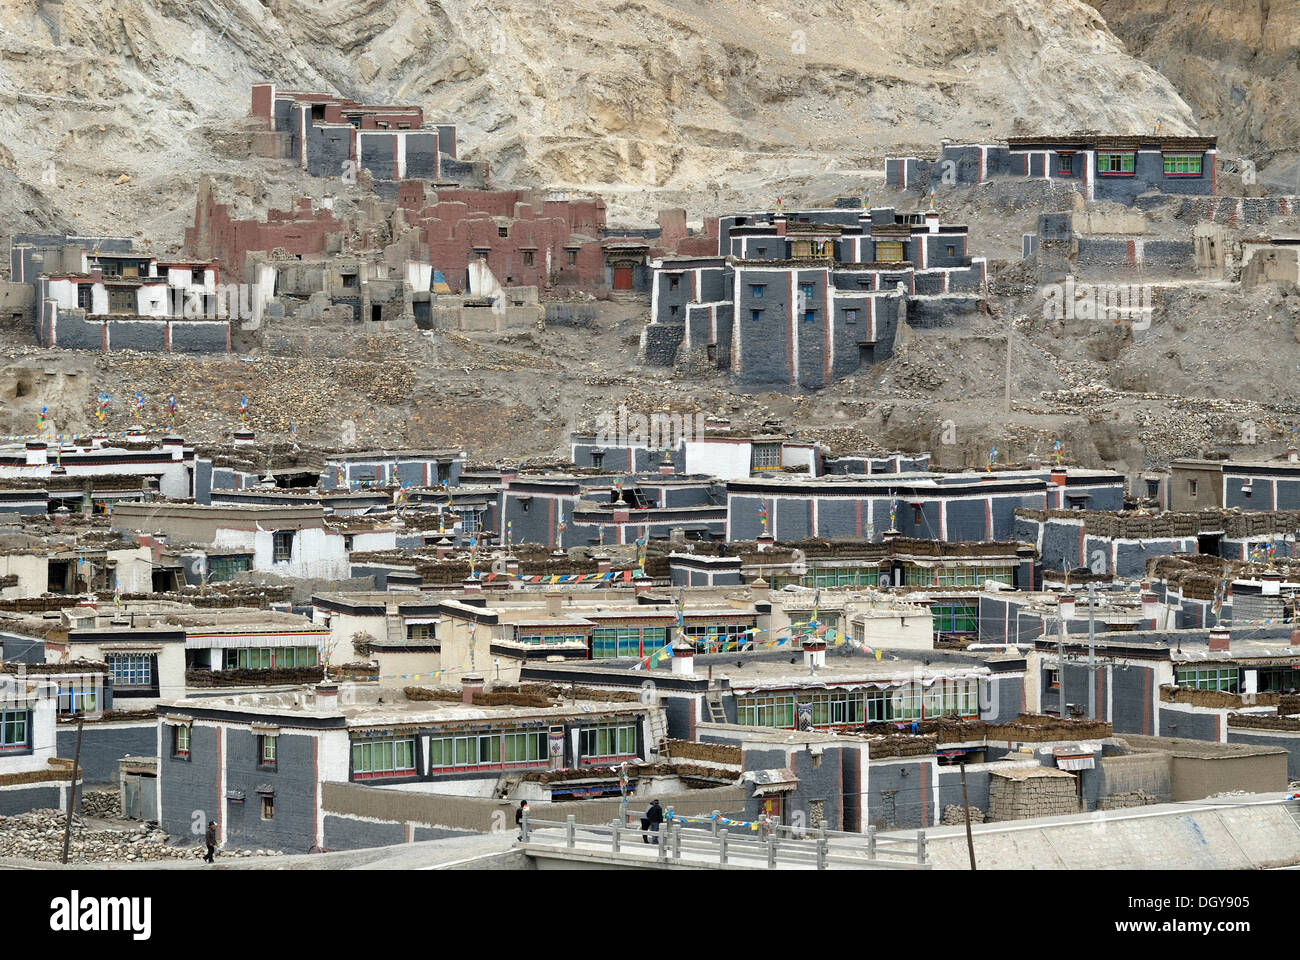 Tibetan temples and monastery built and painted in Sakya architectural style on a mountainside, Sakya, Central Tibet, Tibet - Stock Image